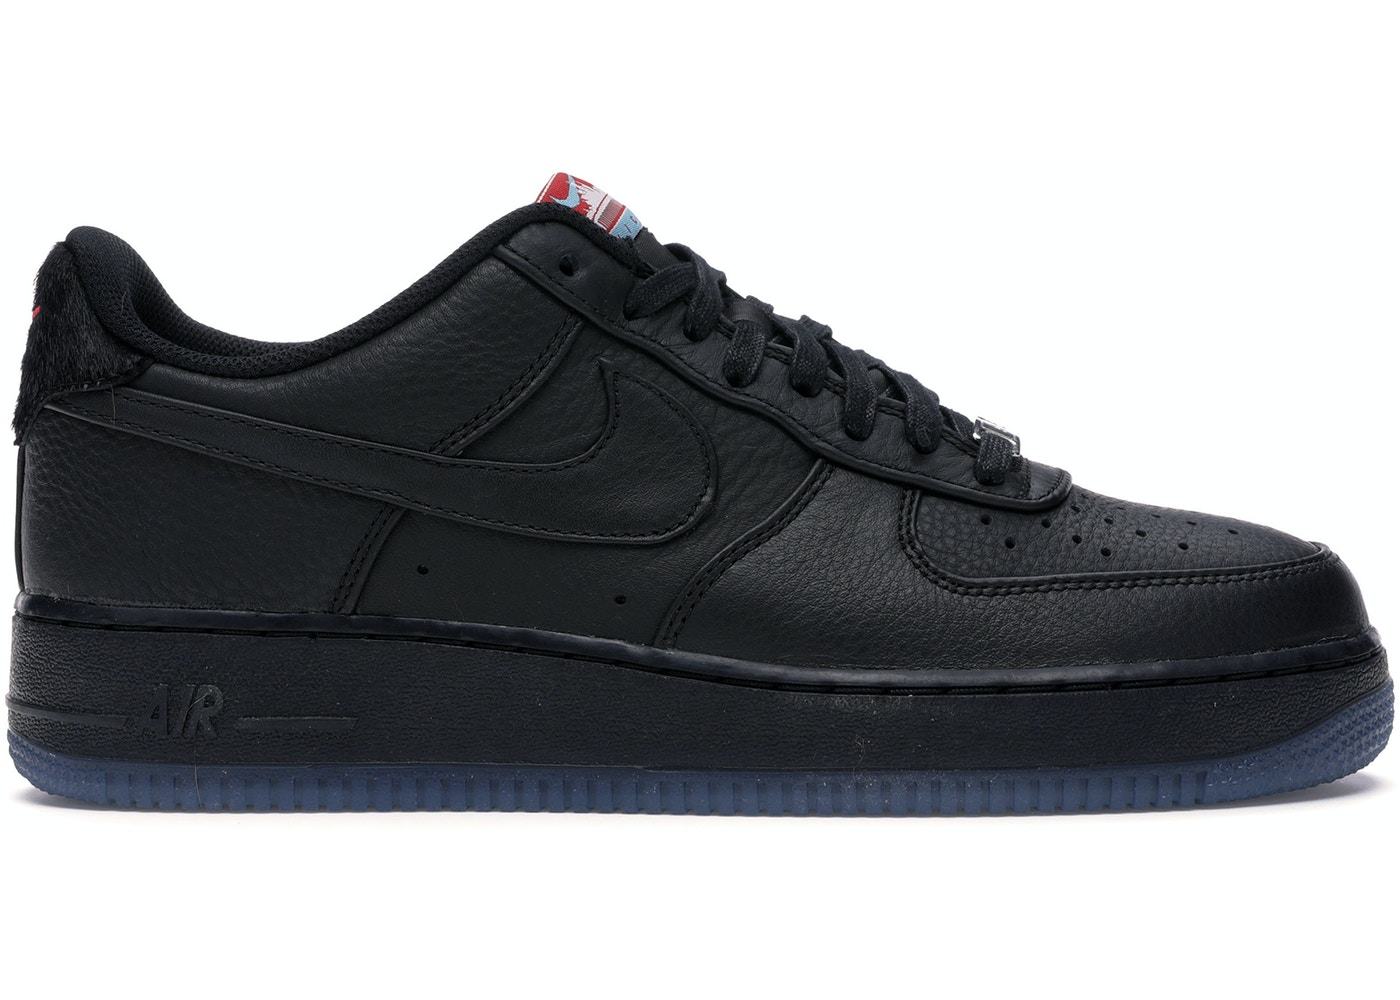 Nike Air Force 1 Low Chicago (2019) - CT1520-001